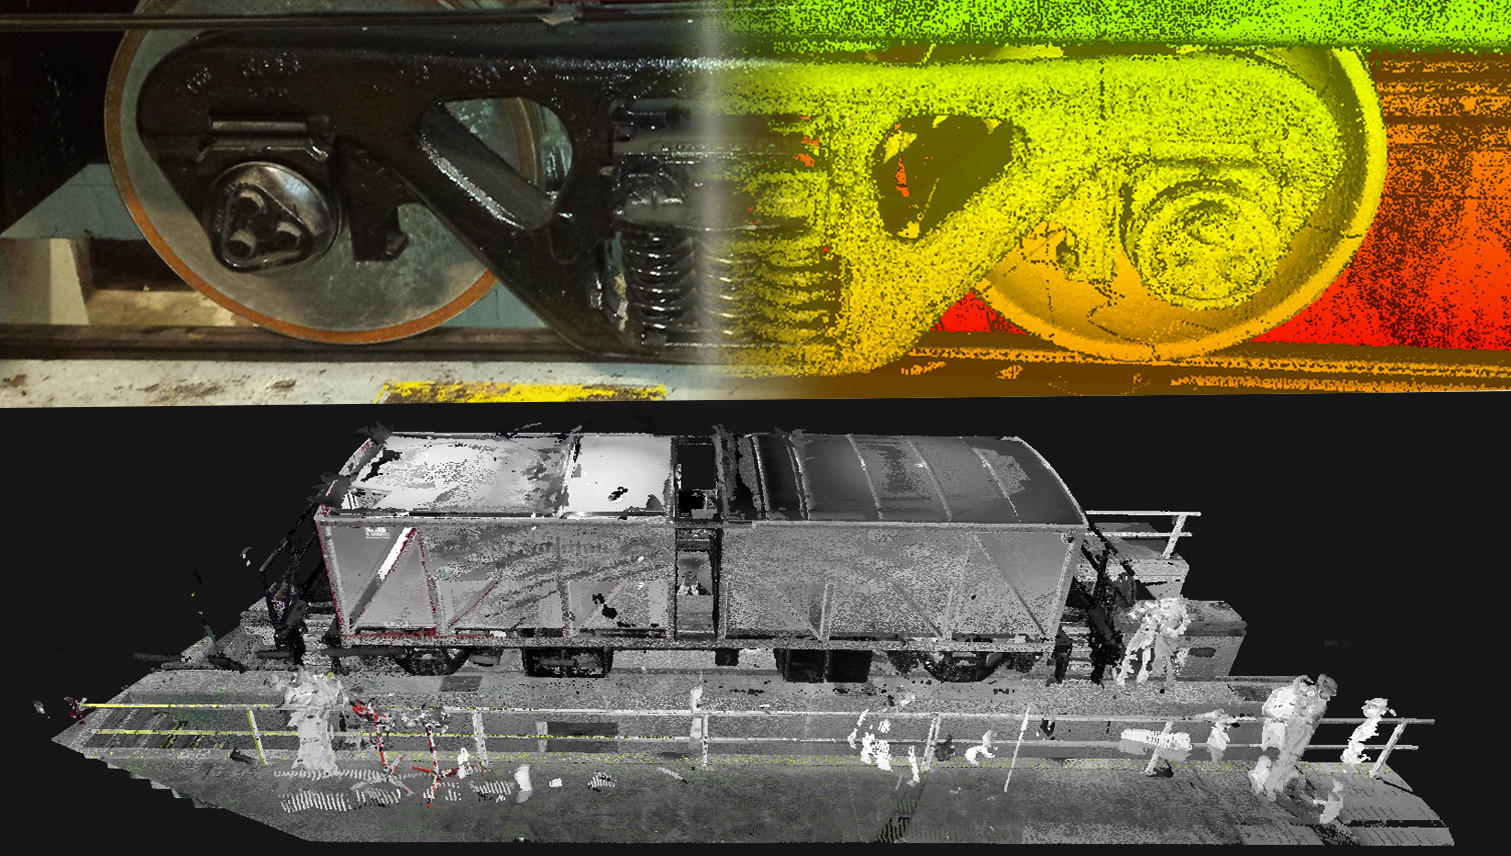 REALITY VS. REALITY CAPTURE AND 3D POINT CLOUD MODEL- Shown here is an example of a rail car wheel system that needed to be accurately created in a 3D model. The purpose of this scan is to provide the proper spacing measurements for an undercarriage to be added later.